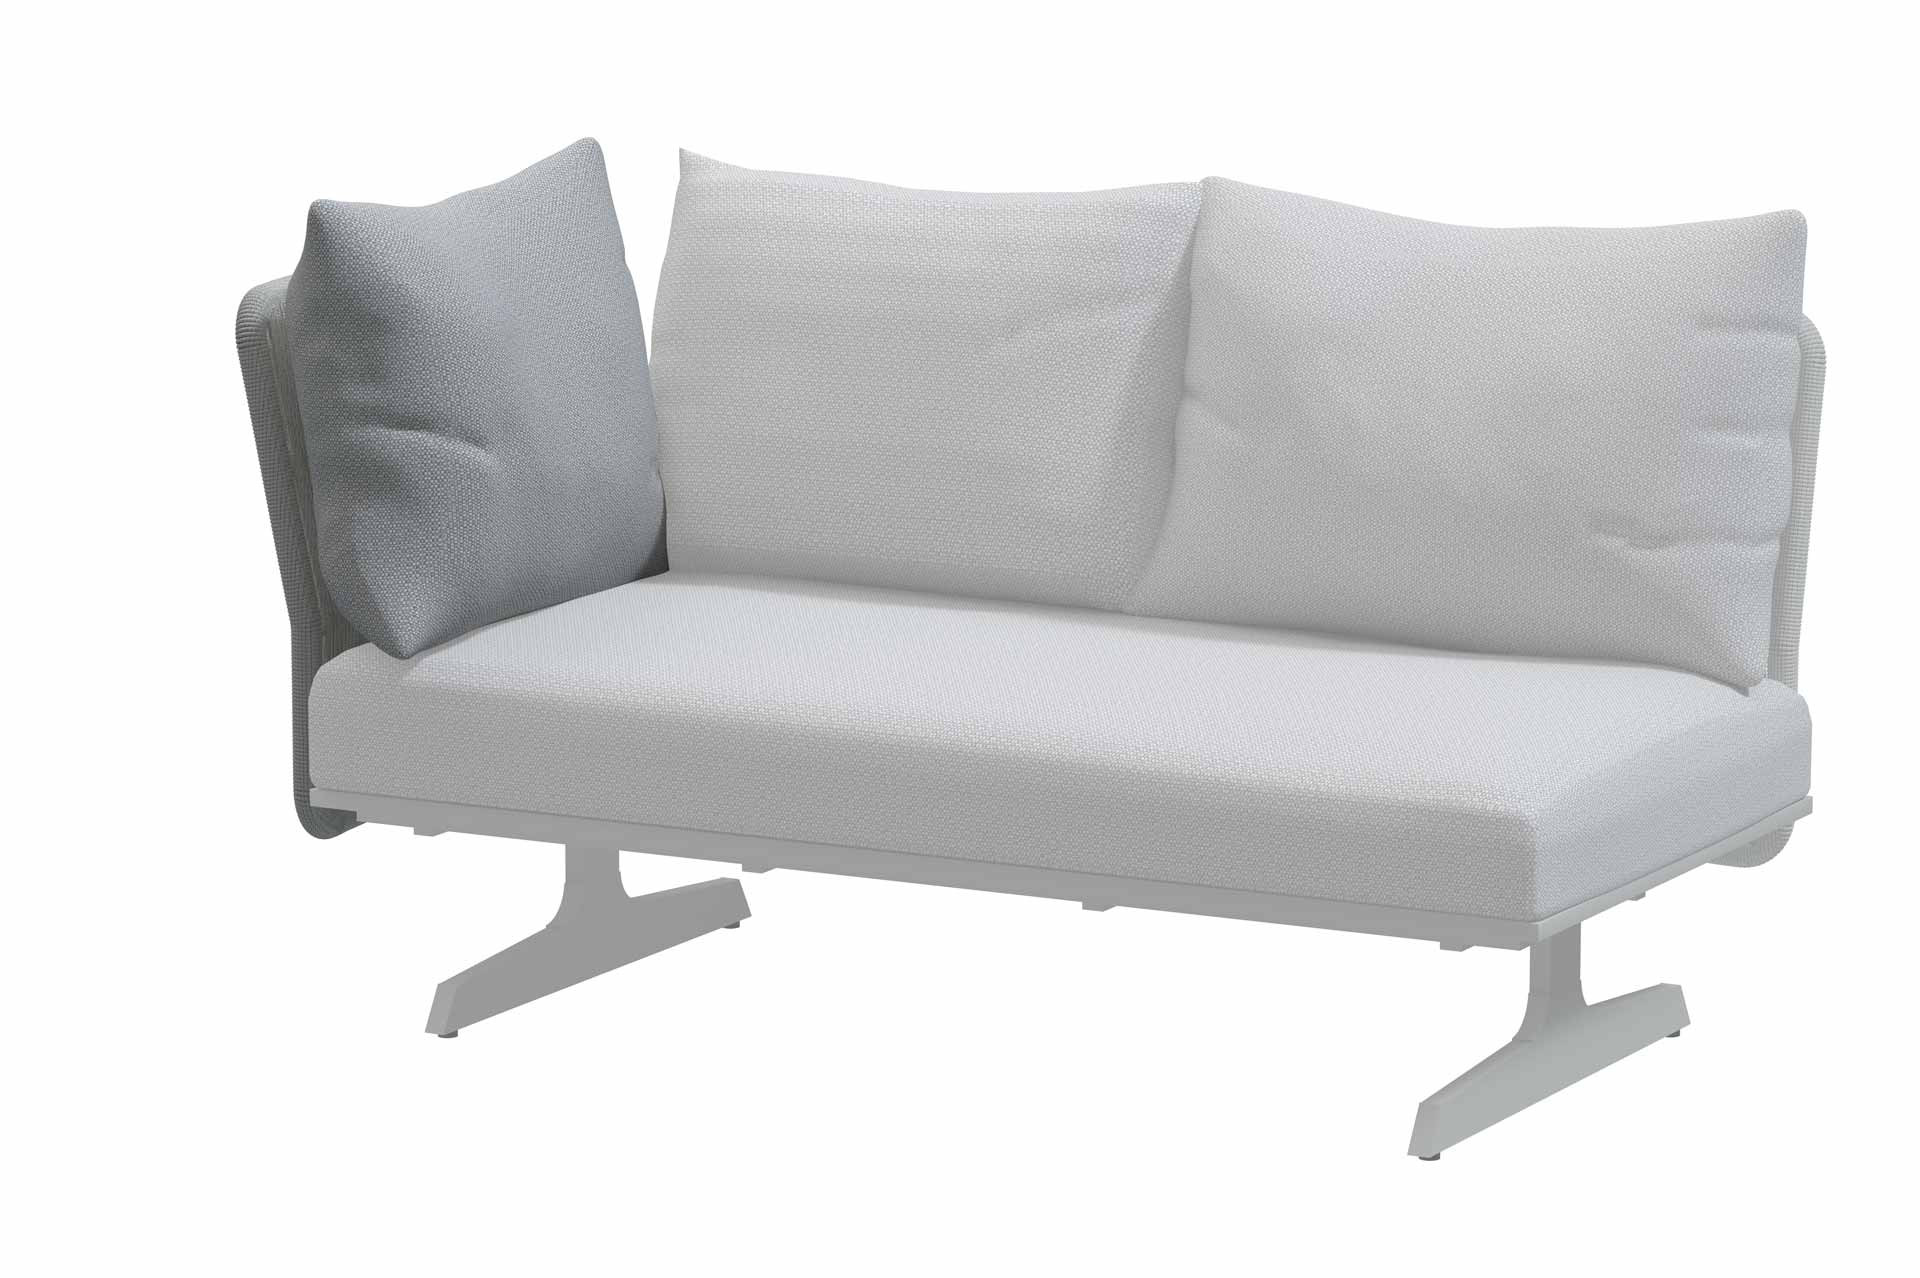 Play panel concept Frost Grey back support with cushion